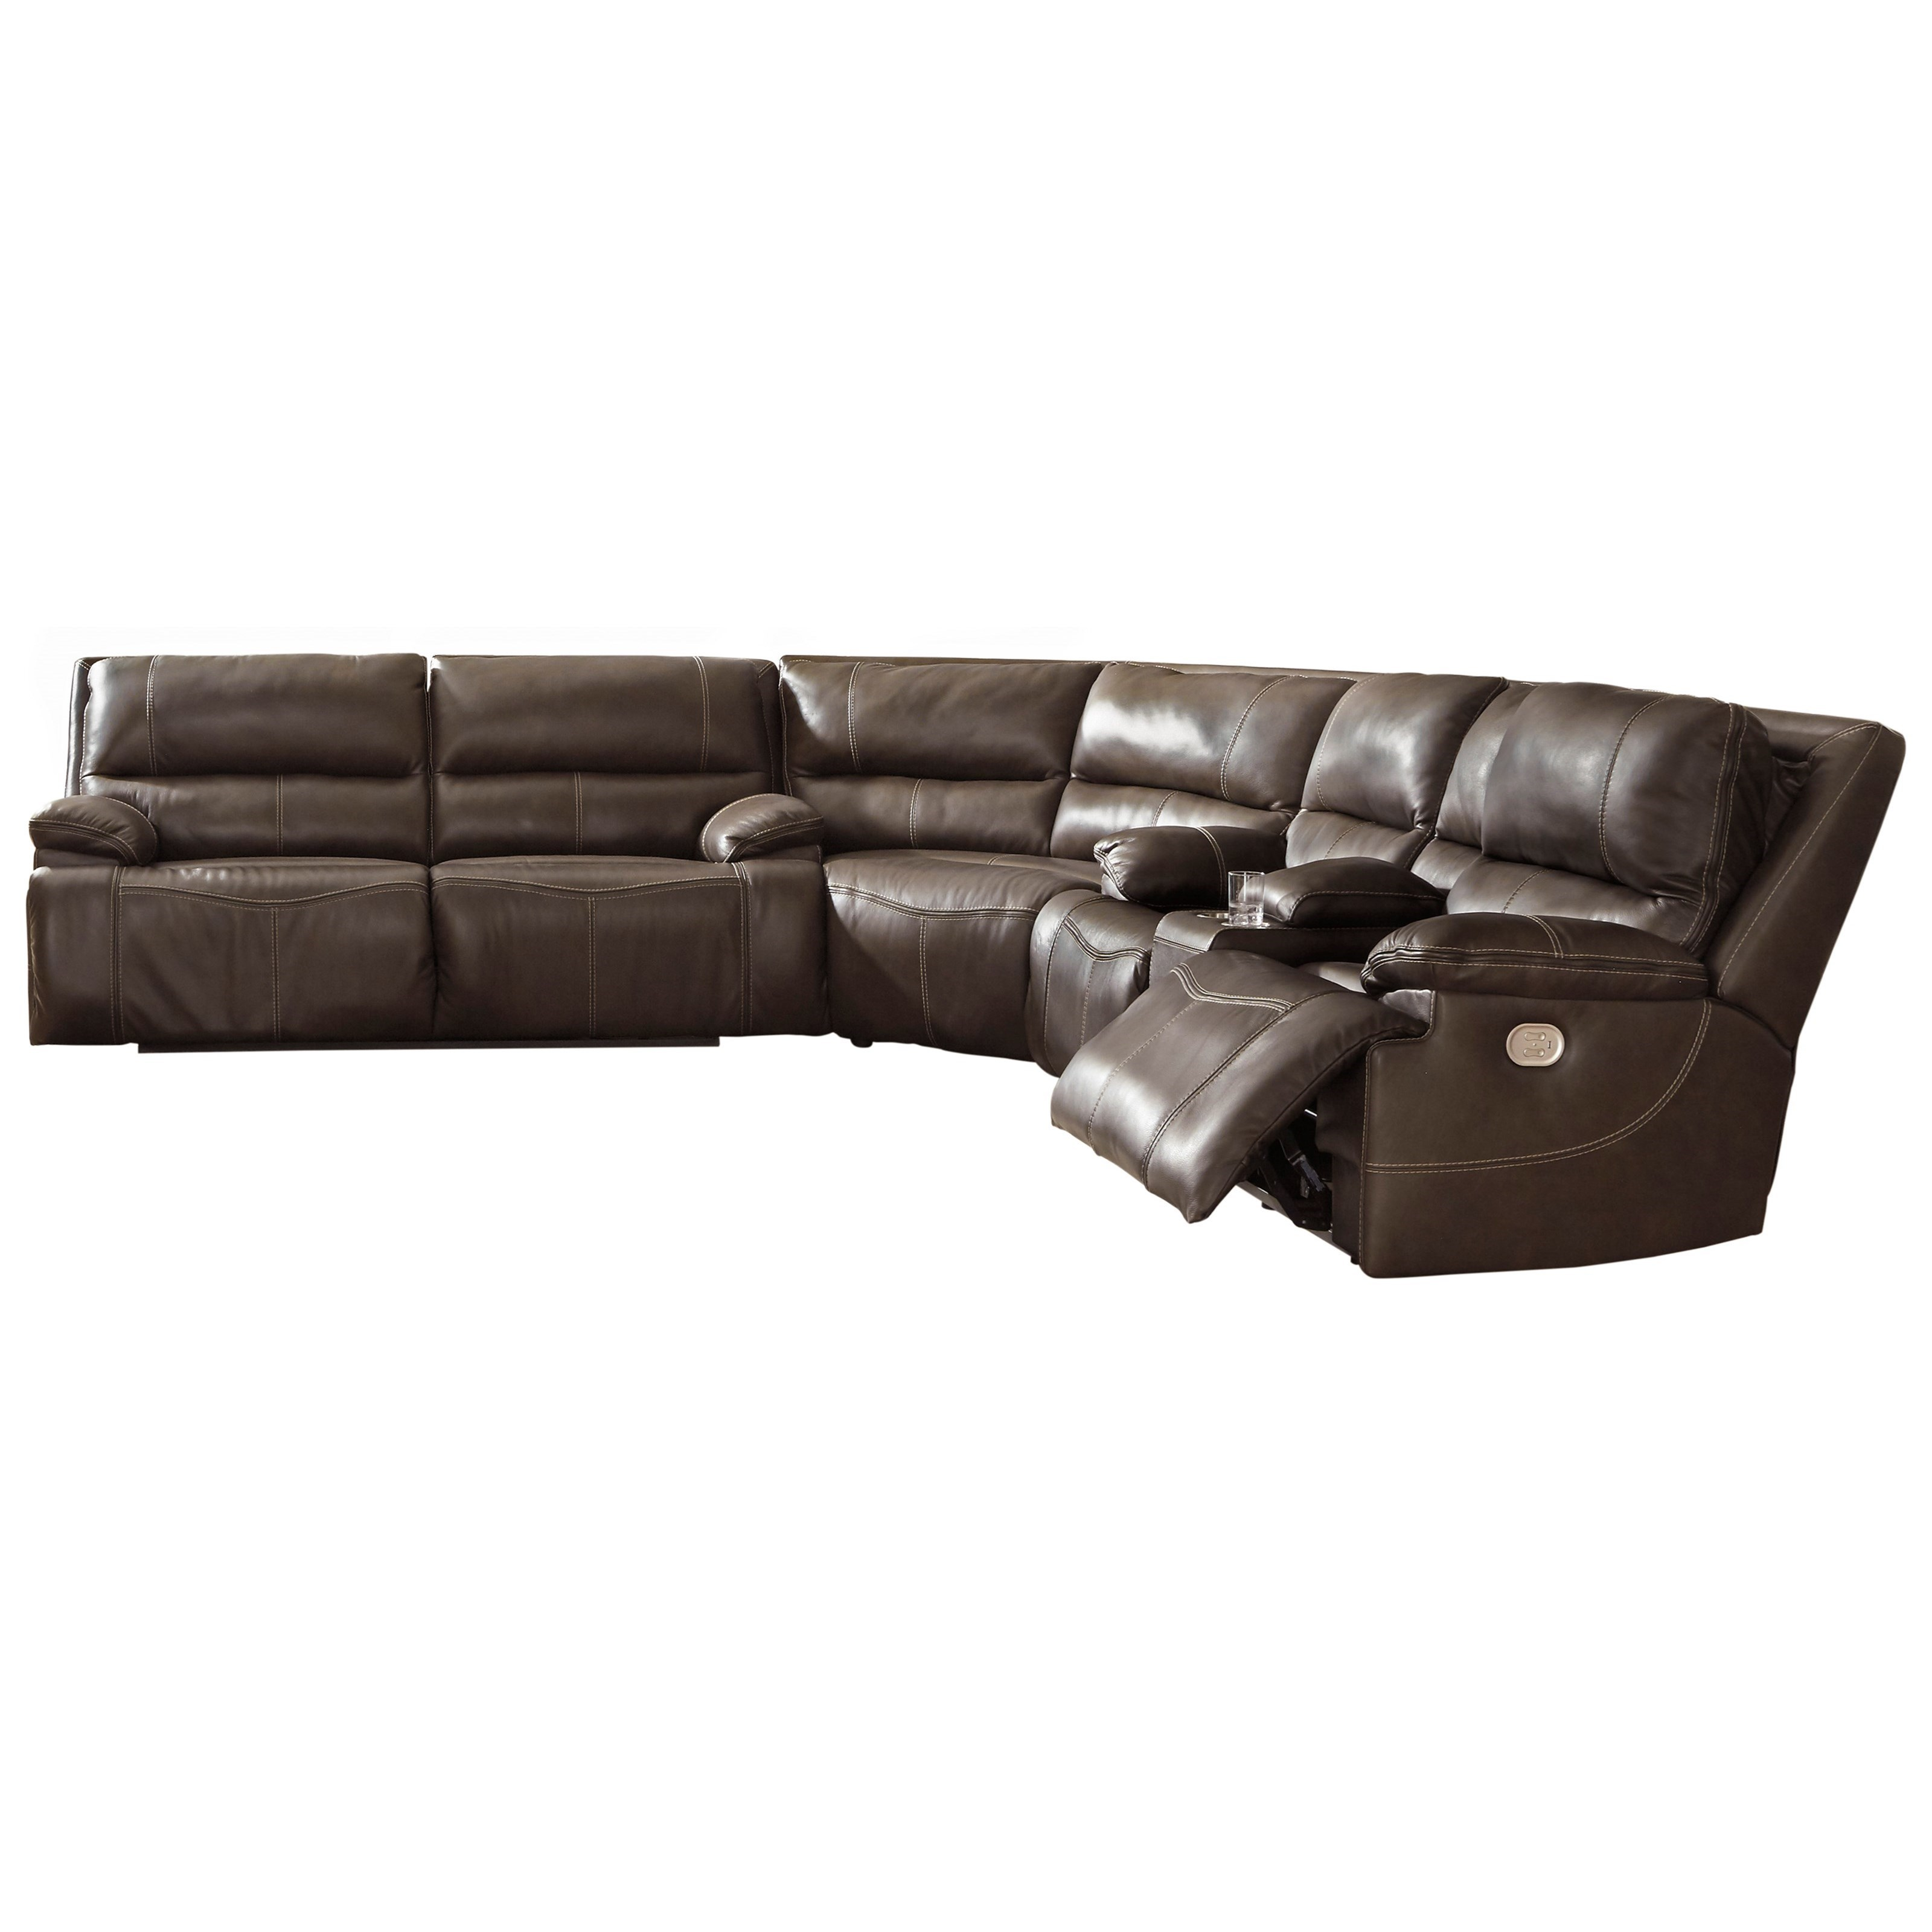 Ricmen 3-Piece Power Reclining Sectional by Signature Design by Ashley at Beck's Furniture